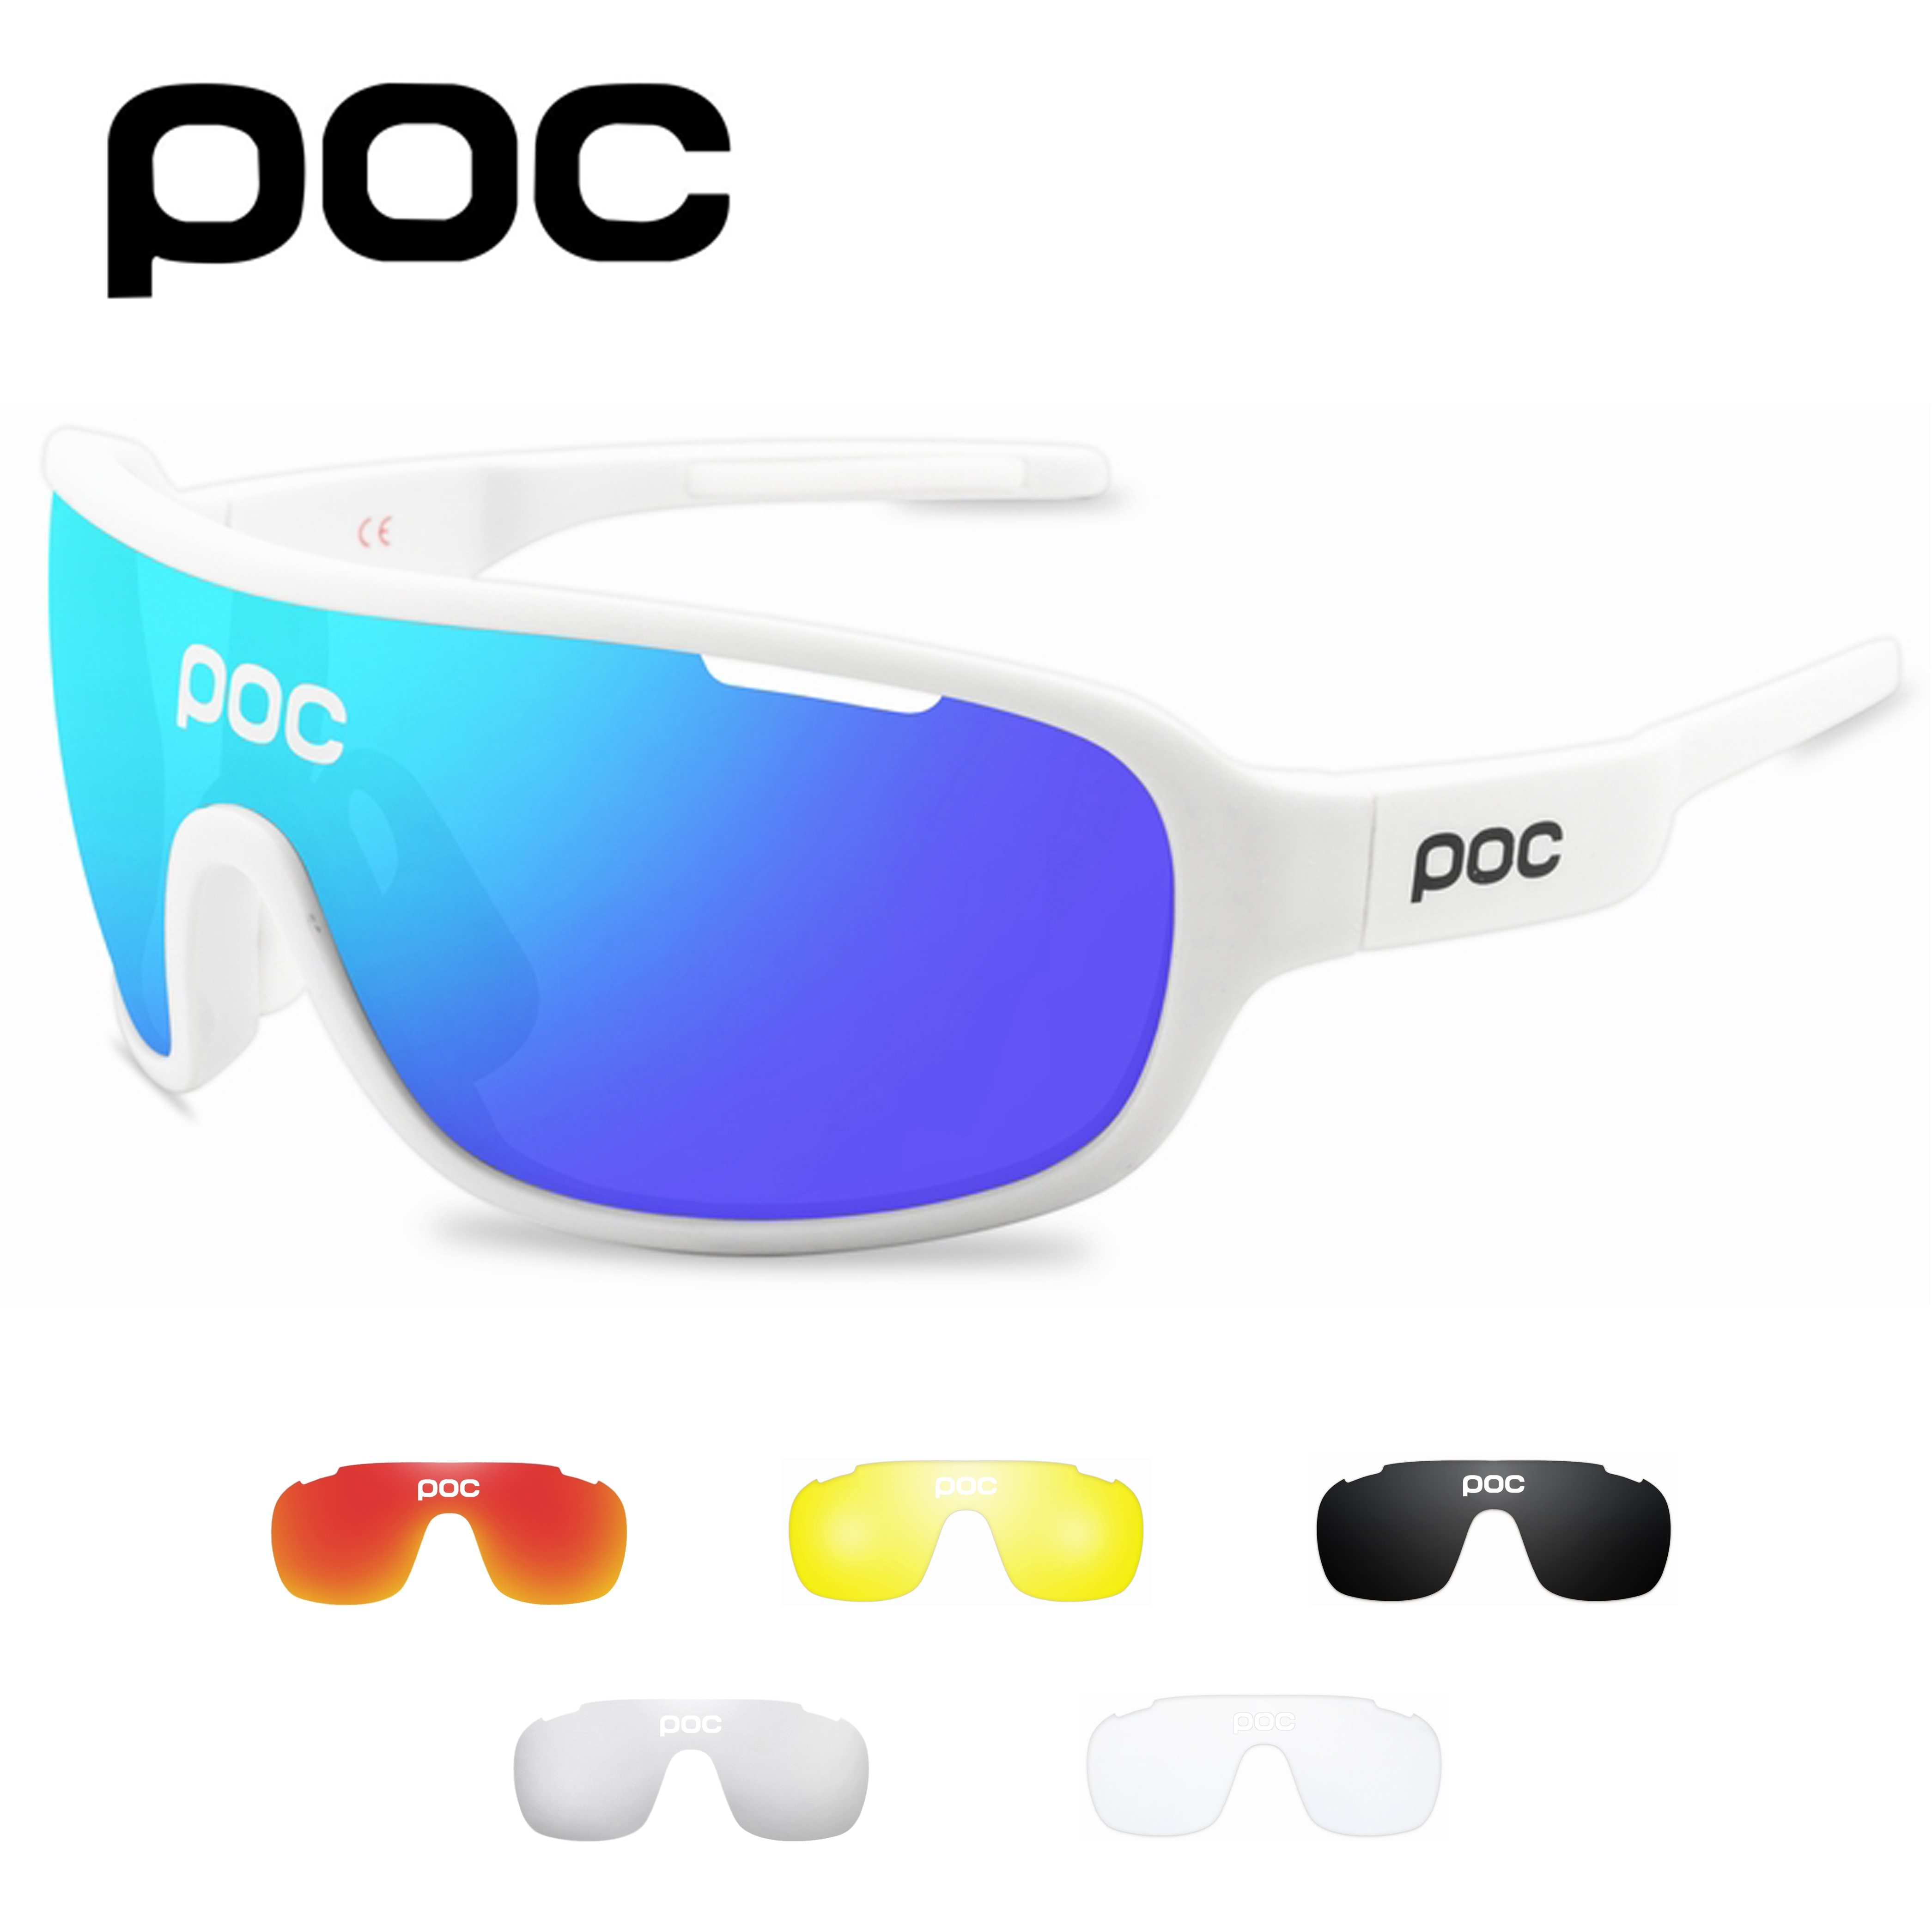 POC 5 Lens Cycling Sunglasses Outdoor Sport Polarized Light Eyewear Men Women Bicycle Mountain Bike Glasses UV400 Goggles 2021 all the new cycling sunglasses men women uv400 sport mountain road bike glasses mtb running fishing goggles bicycle eyewear